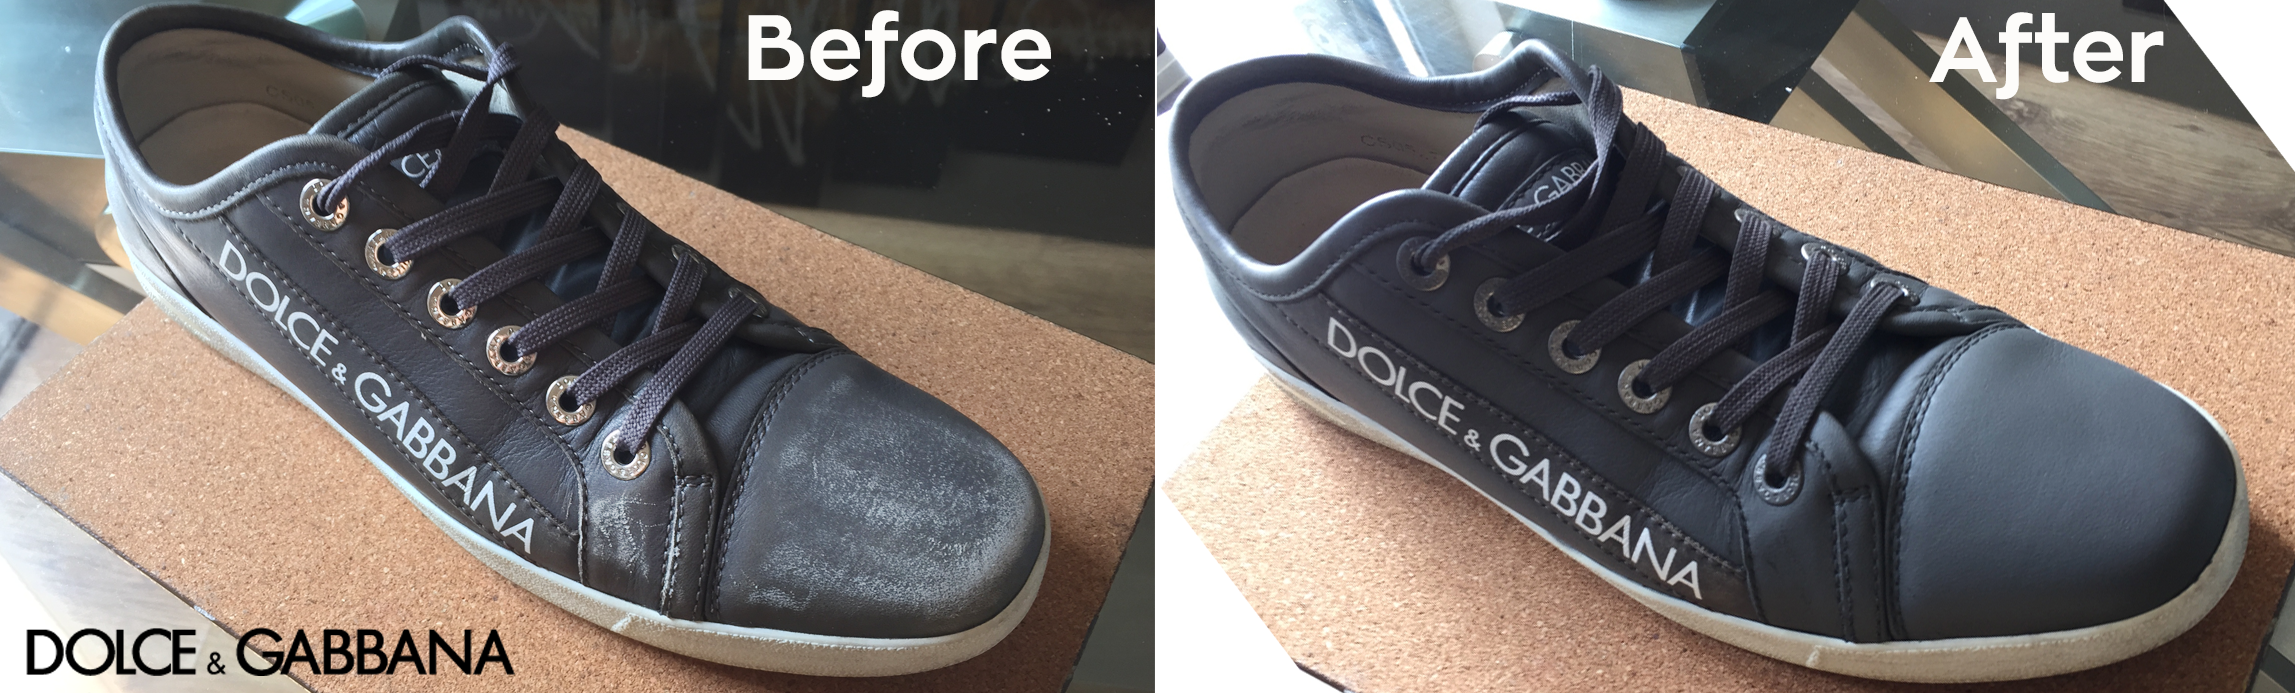 d&g trainer restoration